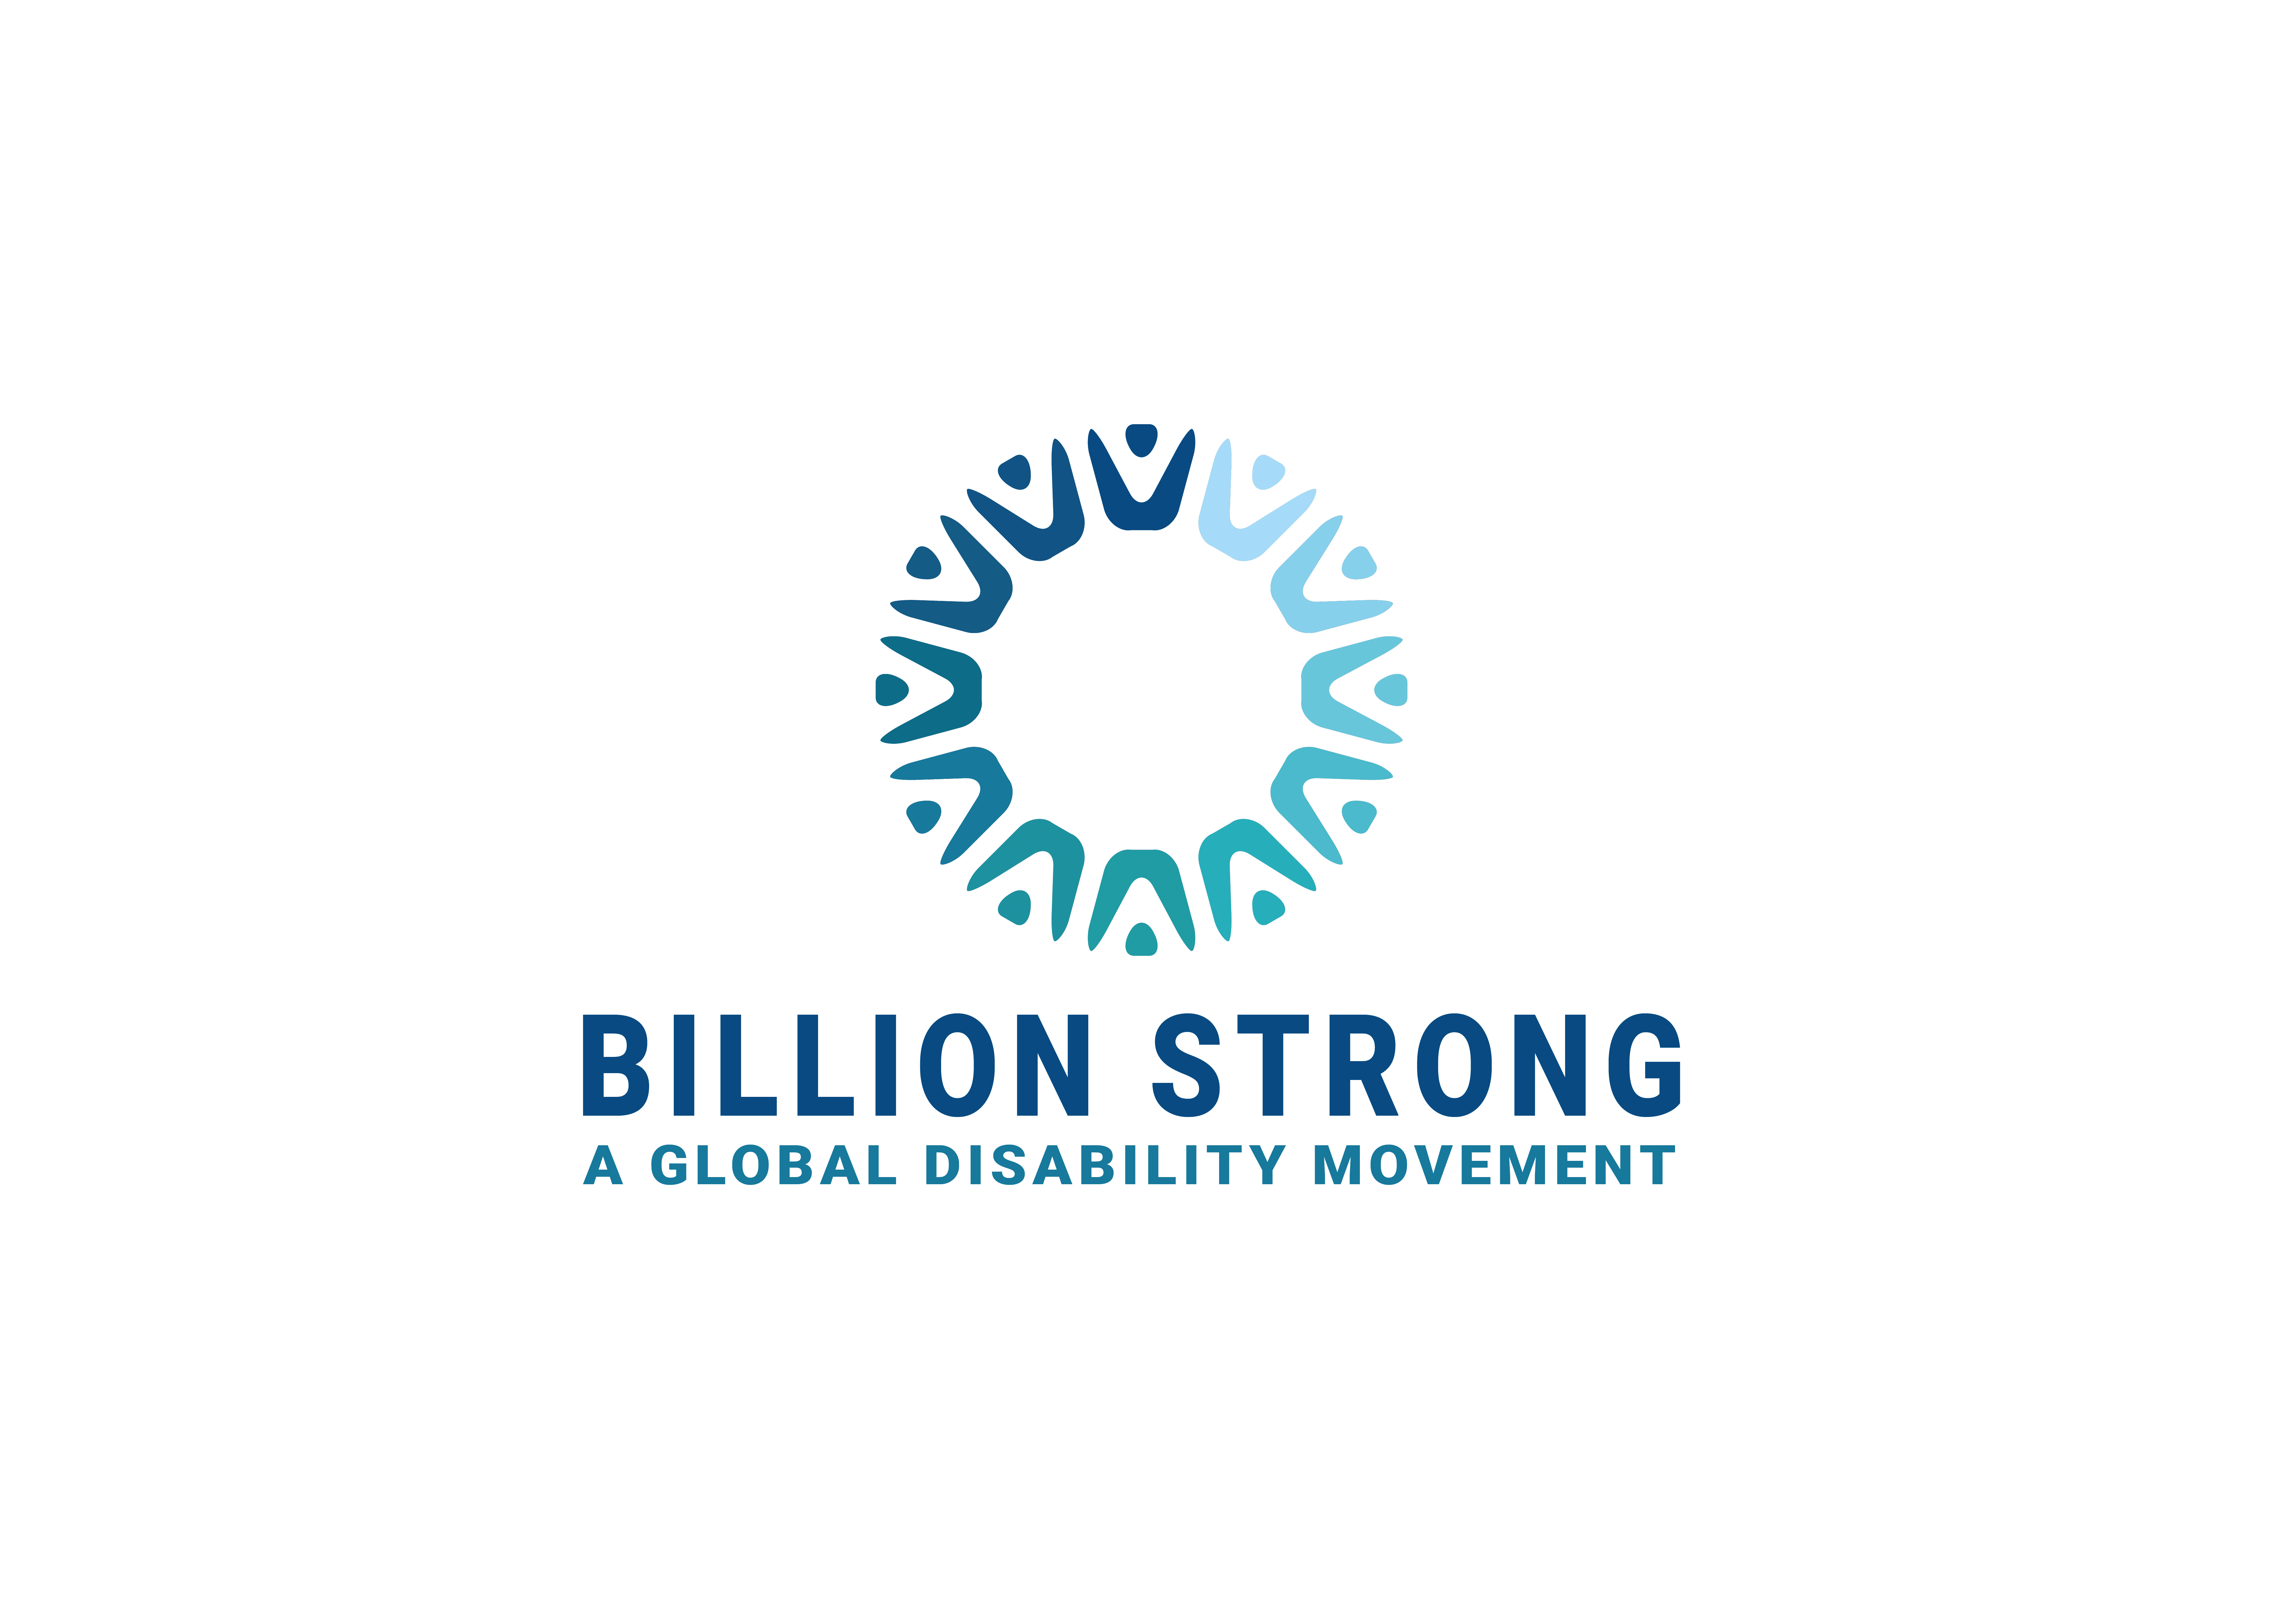 Billion Strong logo with text 'A Global Disability Movement'